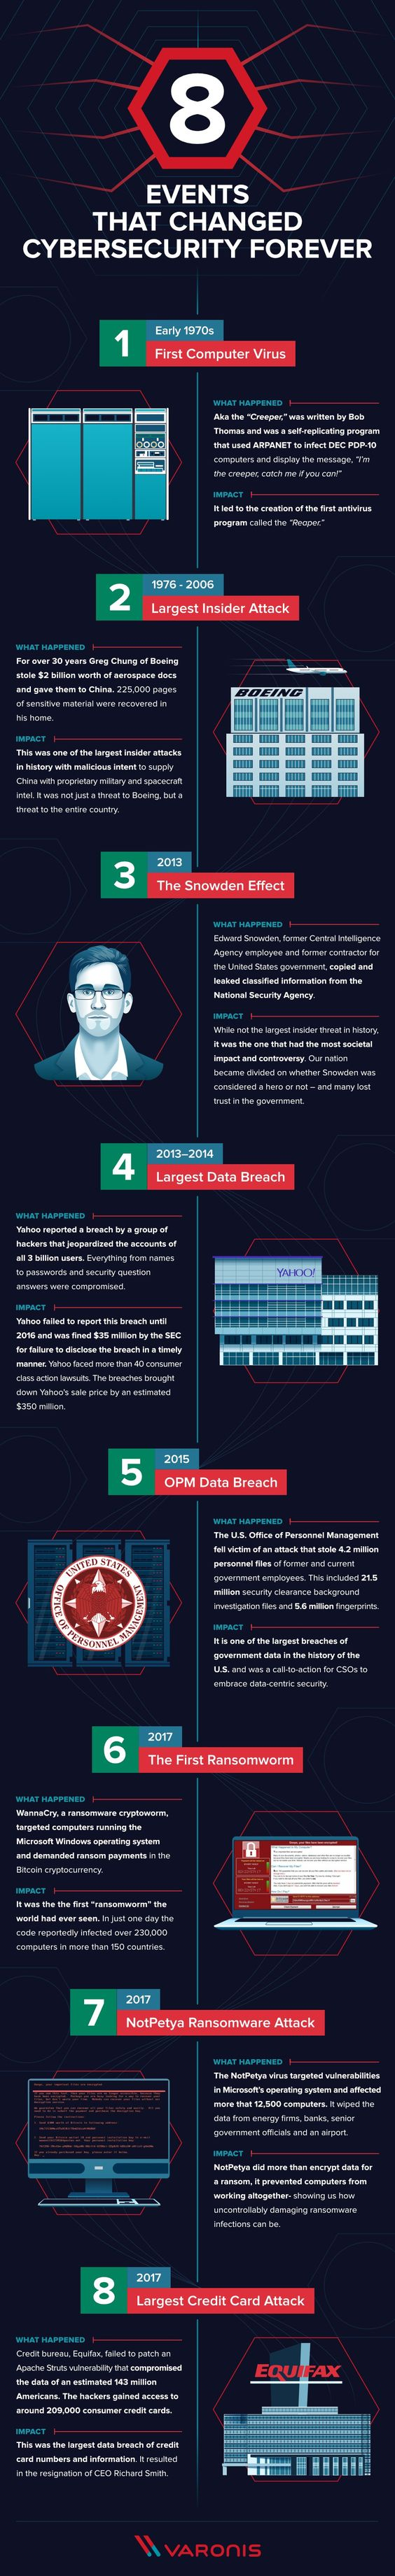 RSN™ Insights: Top 8 Events That Changed Cybersecurity [Infographic]